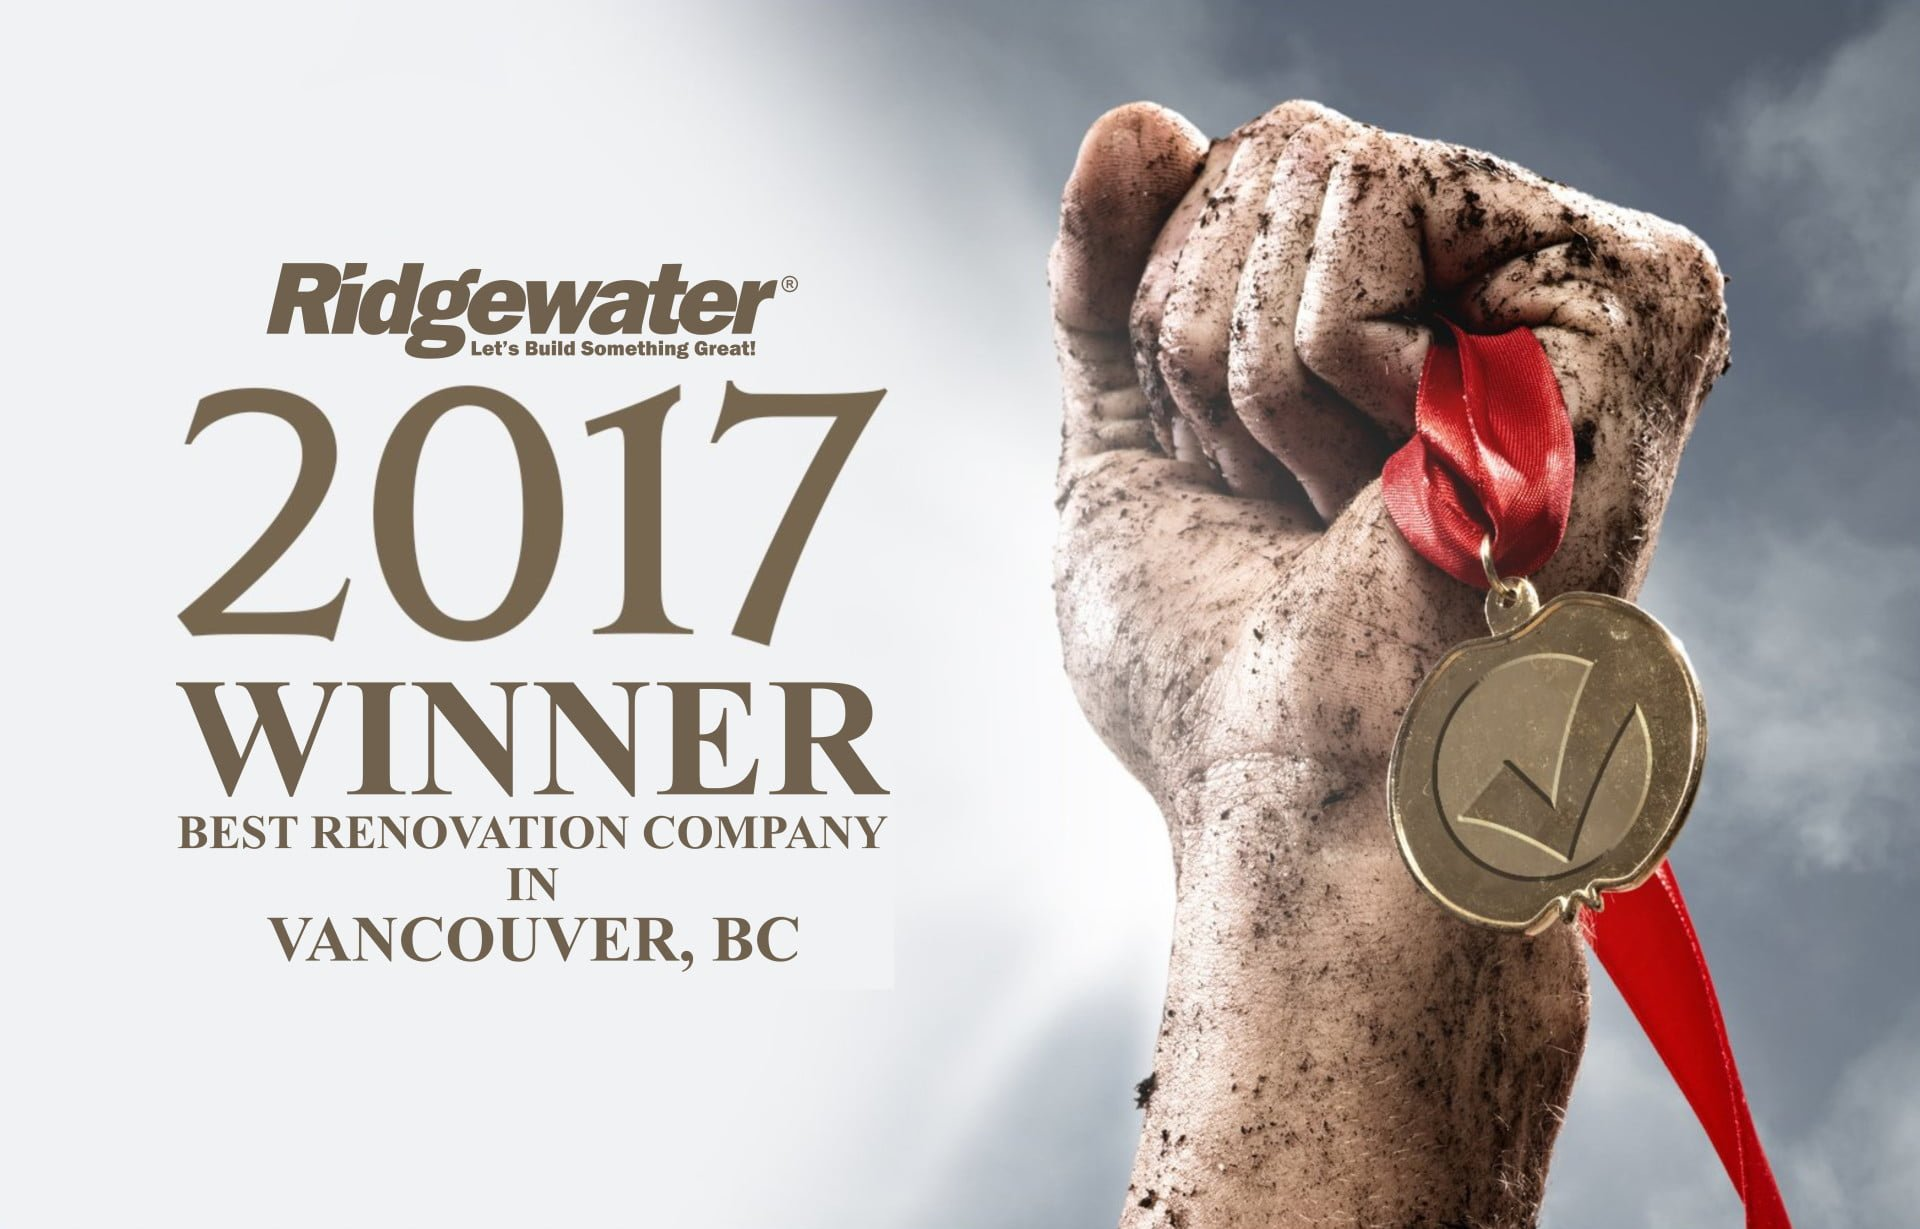 Best Renovation Company for Vancouver and Lower Mainland